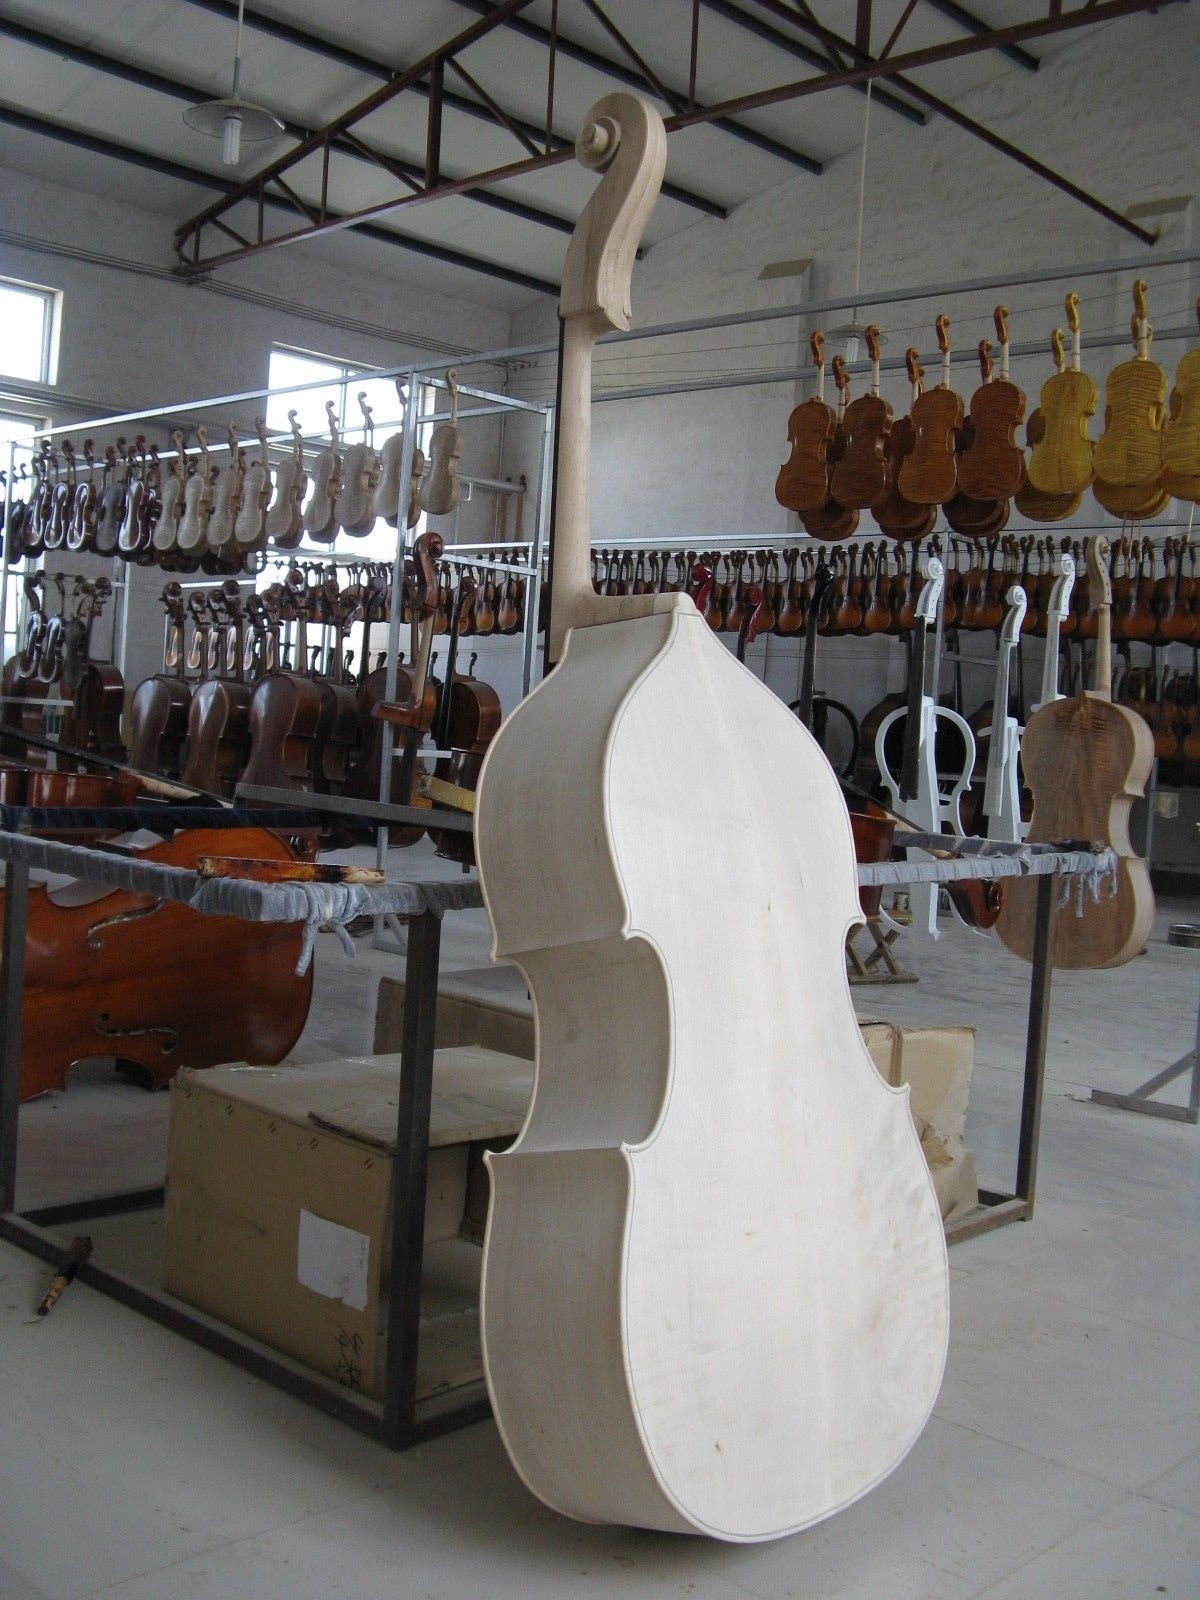 Yinfente Upright Double Bass 3/4 White Unfinished Solid Maple Spruce Wood Hand Made 001202 4 string black 3 4 new electric upright double bass finish silent powerful sound